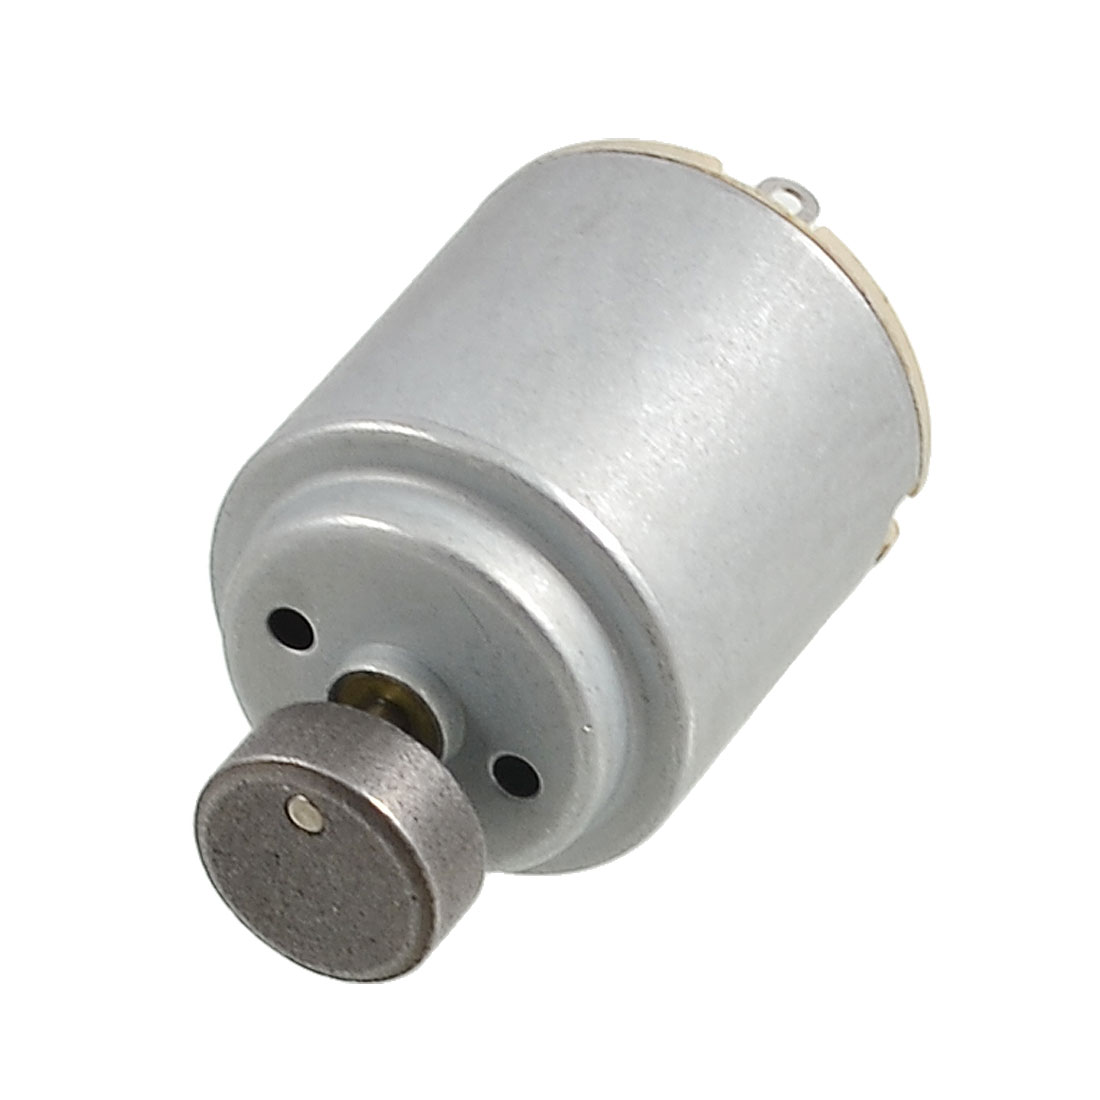 4-5V-15000RPM-Output-Speed-2-Pin-0-035A-DC-Micro-Vibration-Motor